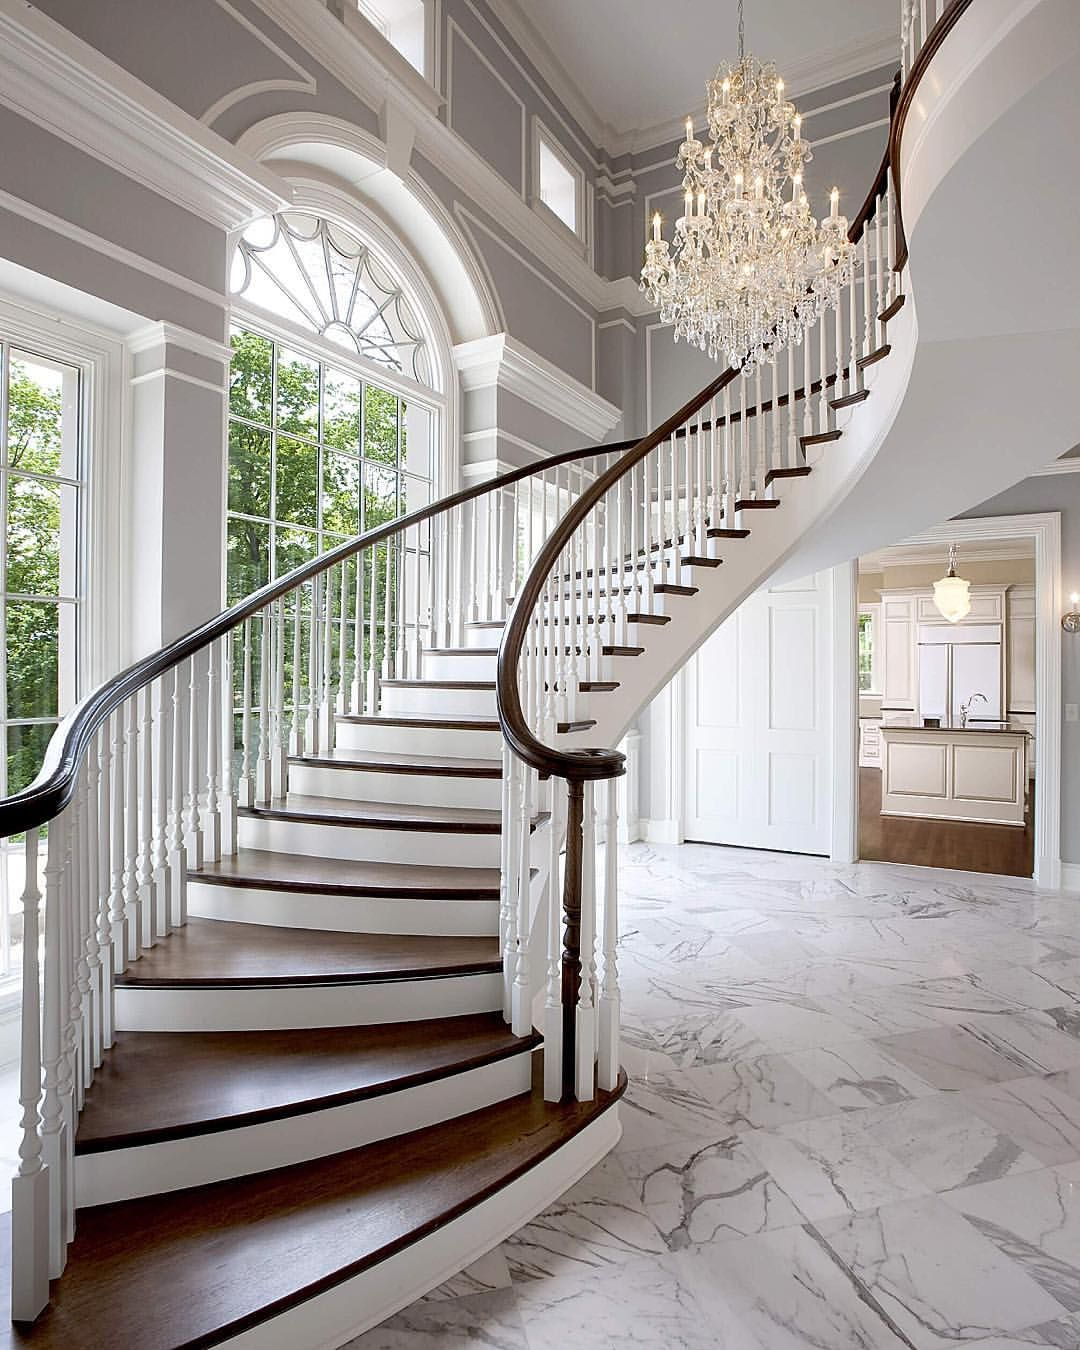 Best By Wade Weissmann Architecture Staircase Design 400 x 300